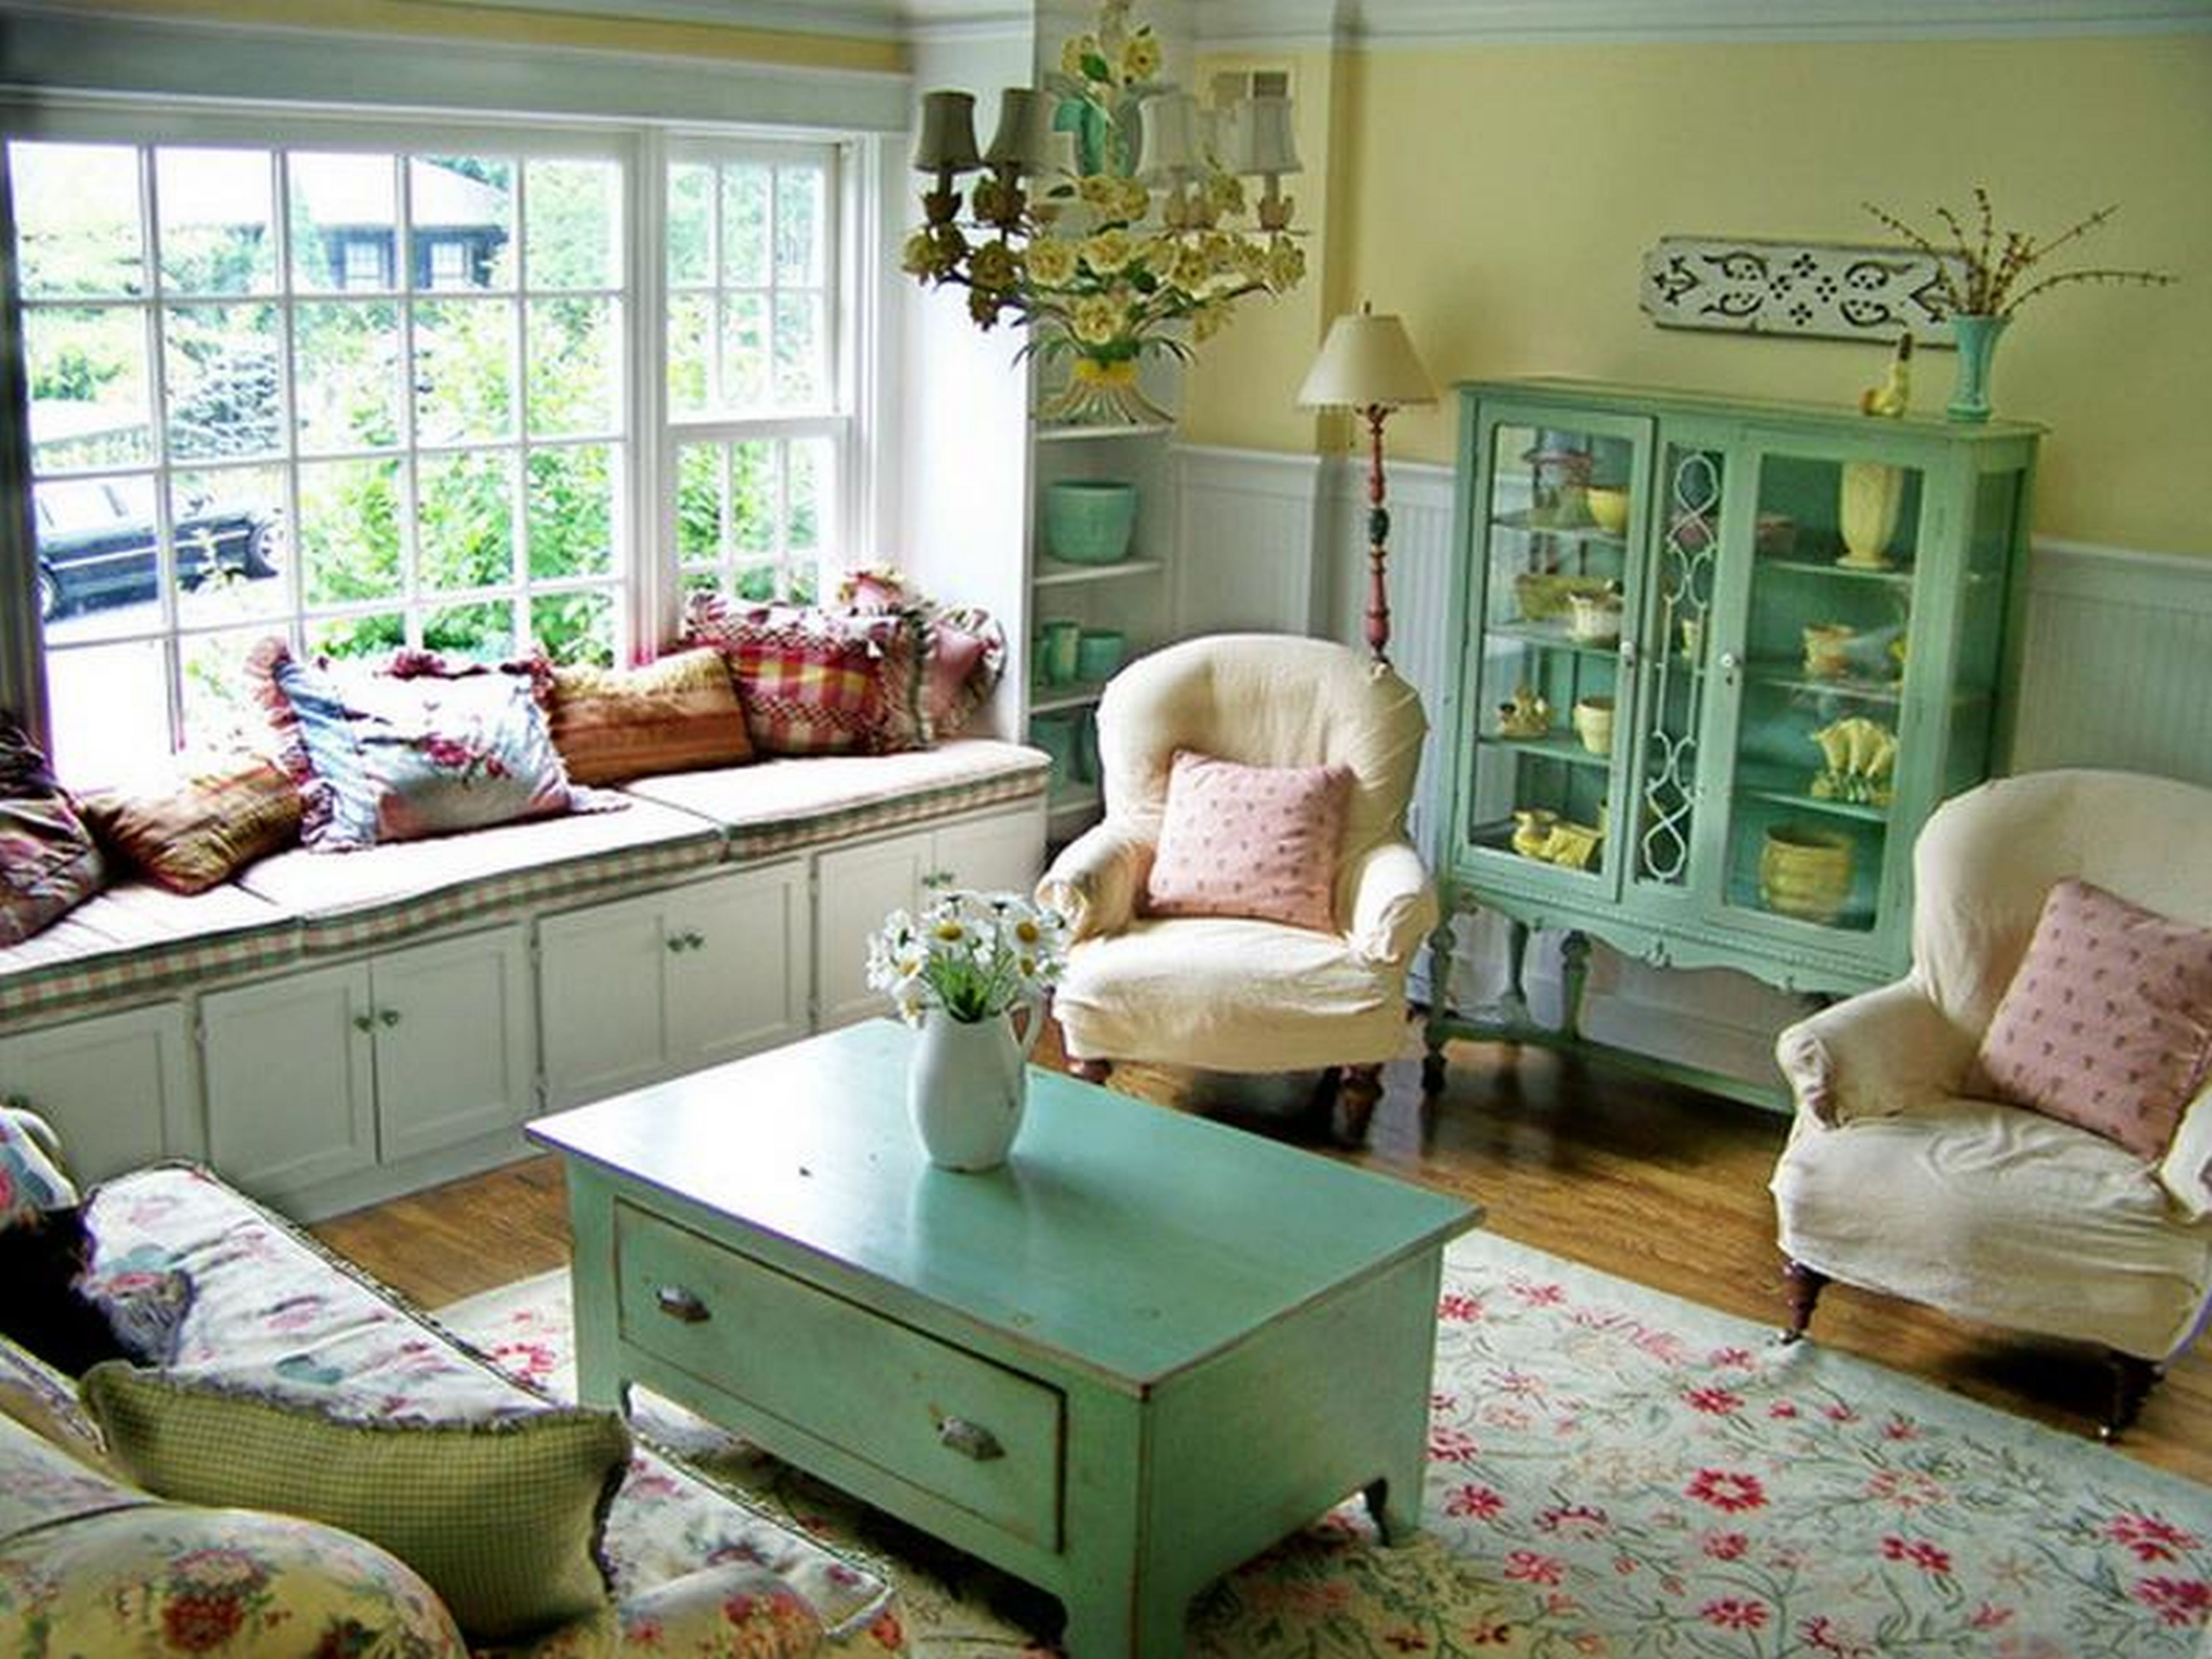 Inspiring 35 Gorgeous Vintage Living Room Designs For Guests To Be Amazed Https Cottage Decor Living Room Cottage Style Living Room Living Room Decor Country Decorating cottage living rooms